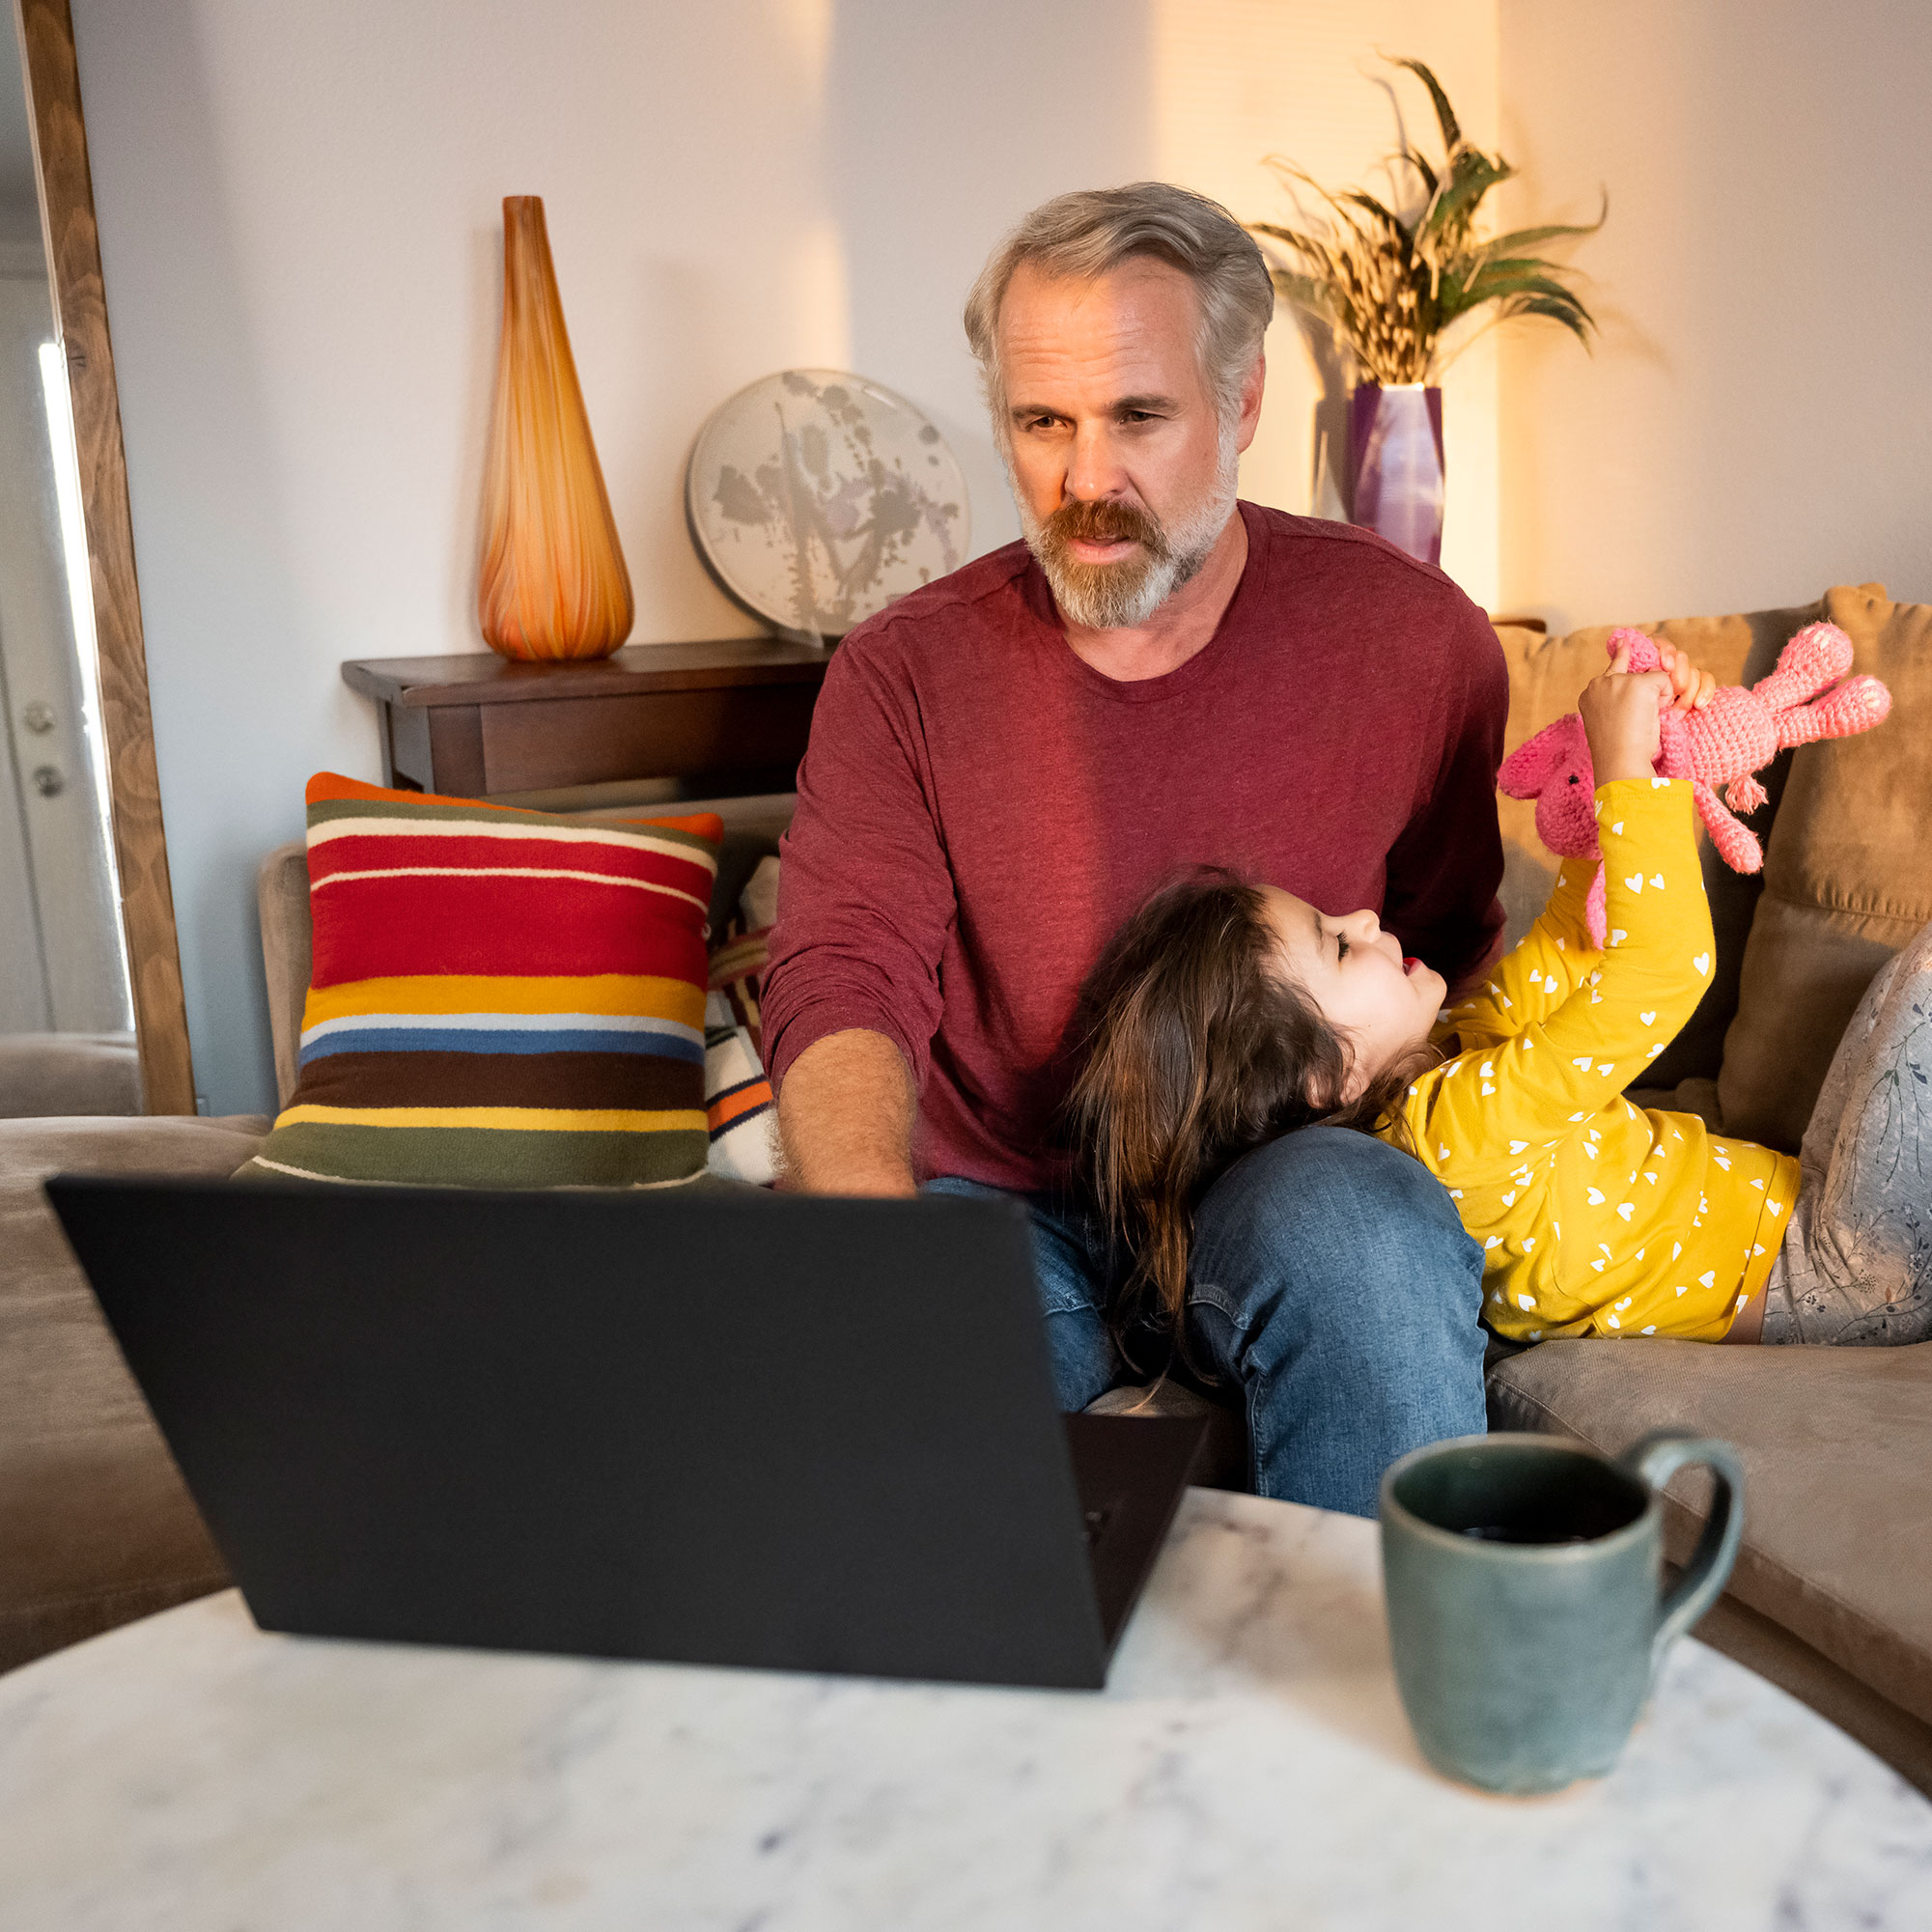 Parent uses laptop to engage in virtual care while cuddling their child on the couch.